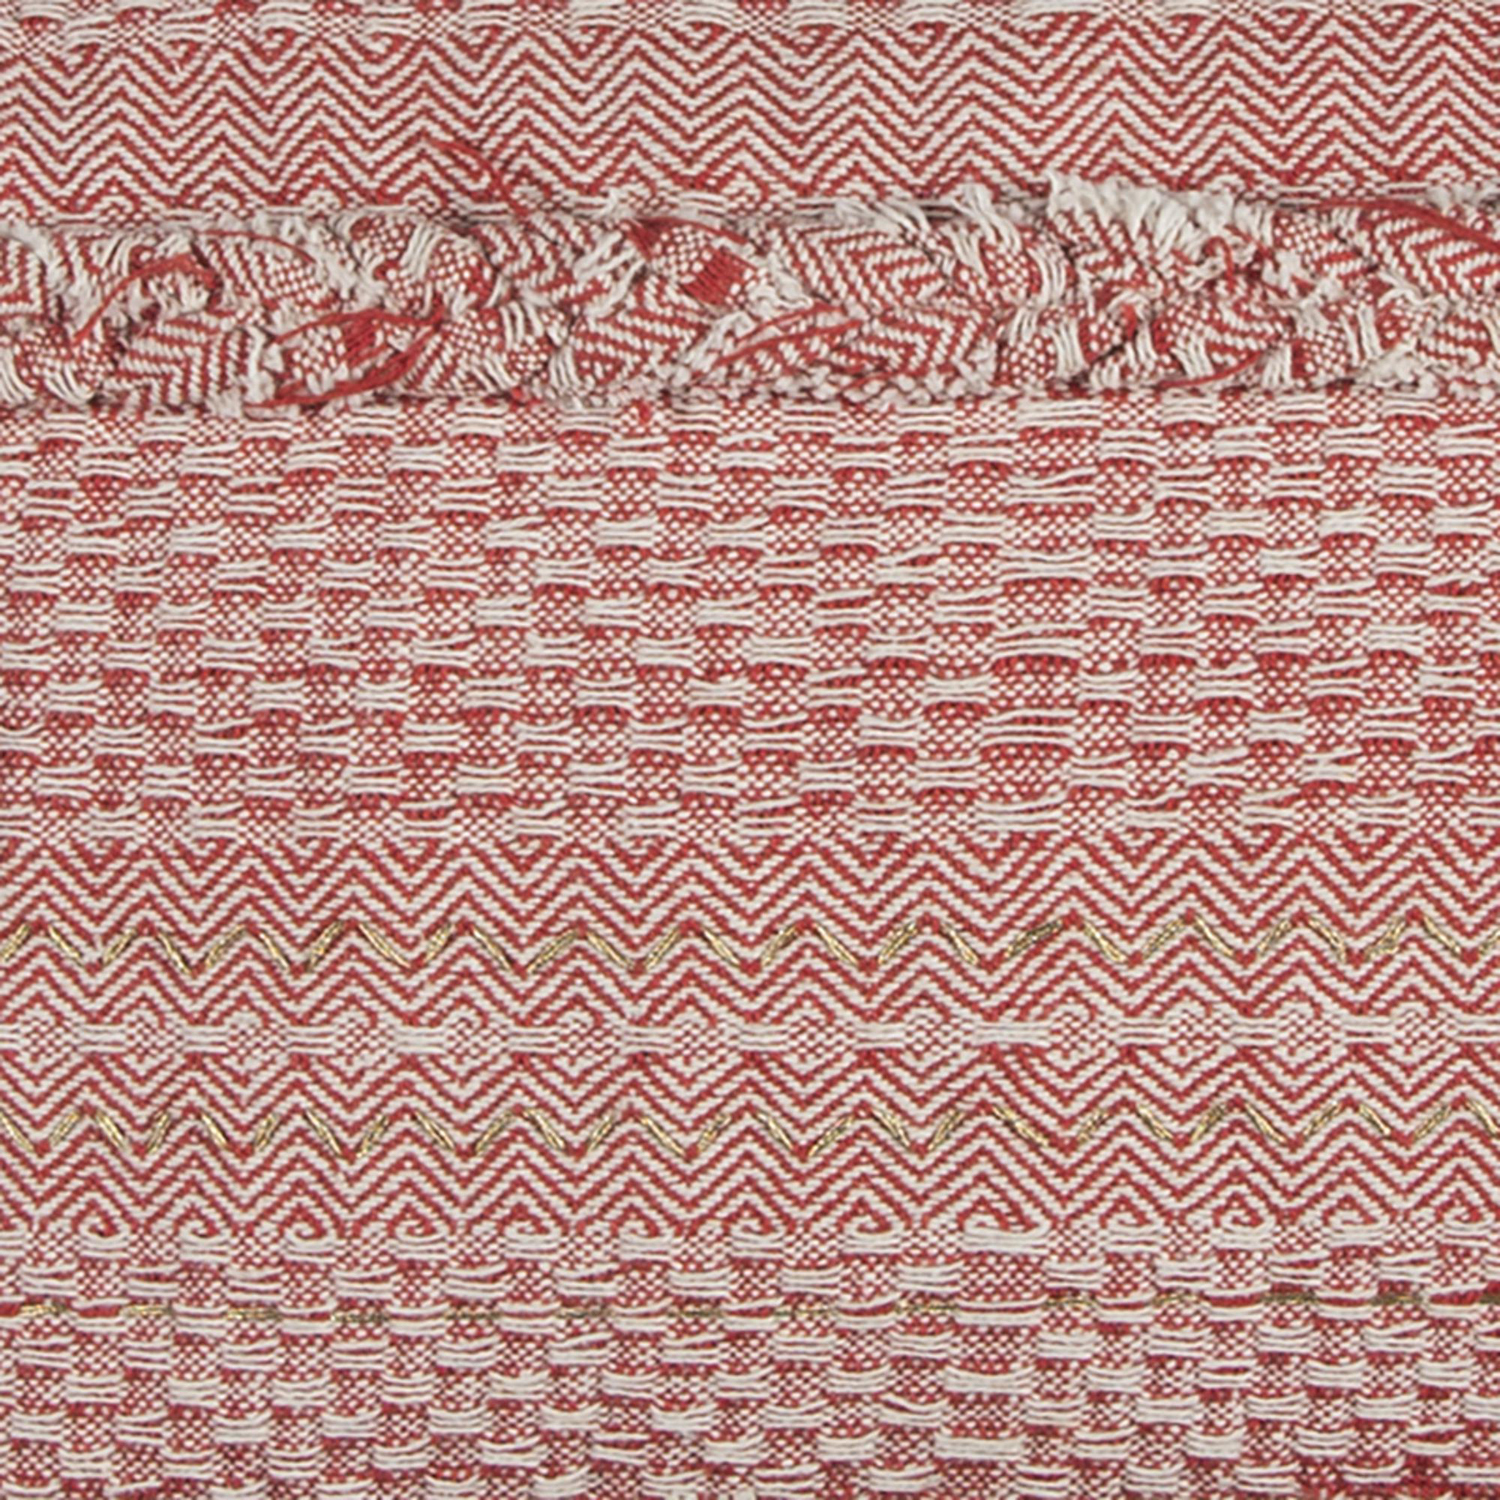 Textured Stripe Red Lumbar Pillow Cover with Tassels